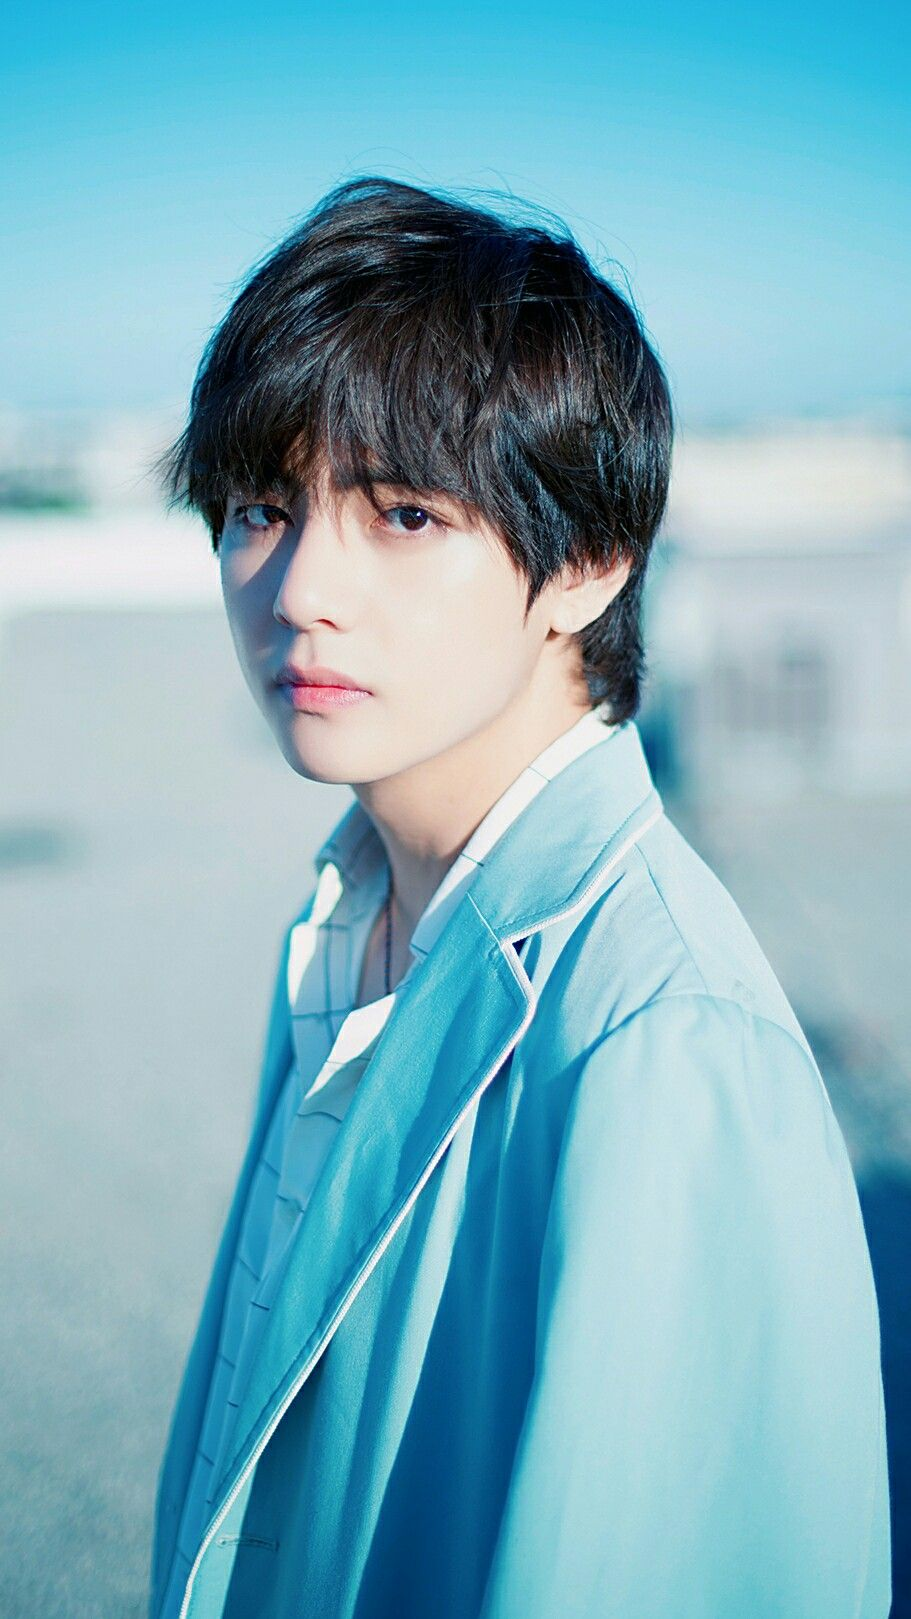 Bts Edits Bts Wallpapers Bts X Dispatch Bts 5th Anniversary Pls Make Sure To Follow Me Before U Save It Find More On My A Bts V Kim Taehyung Taehyung